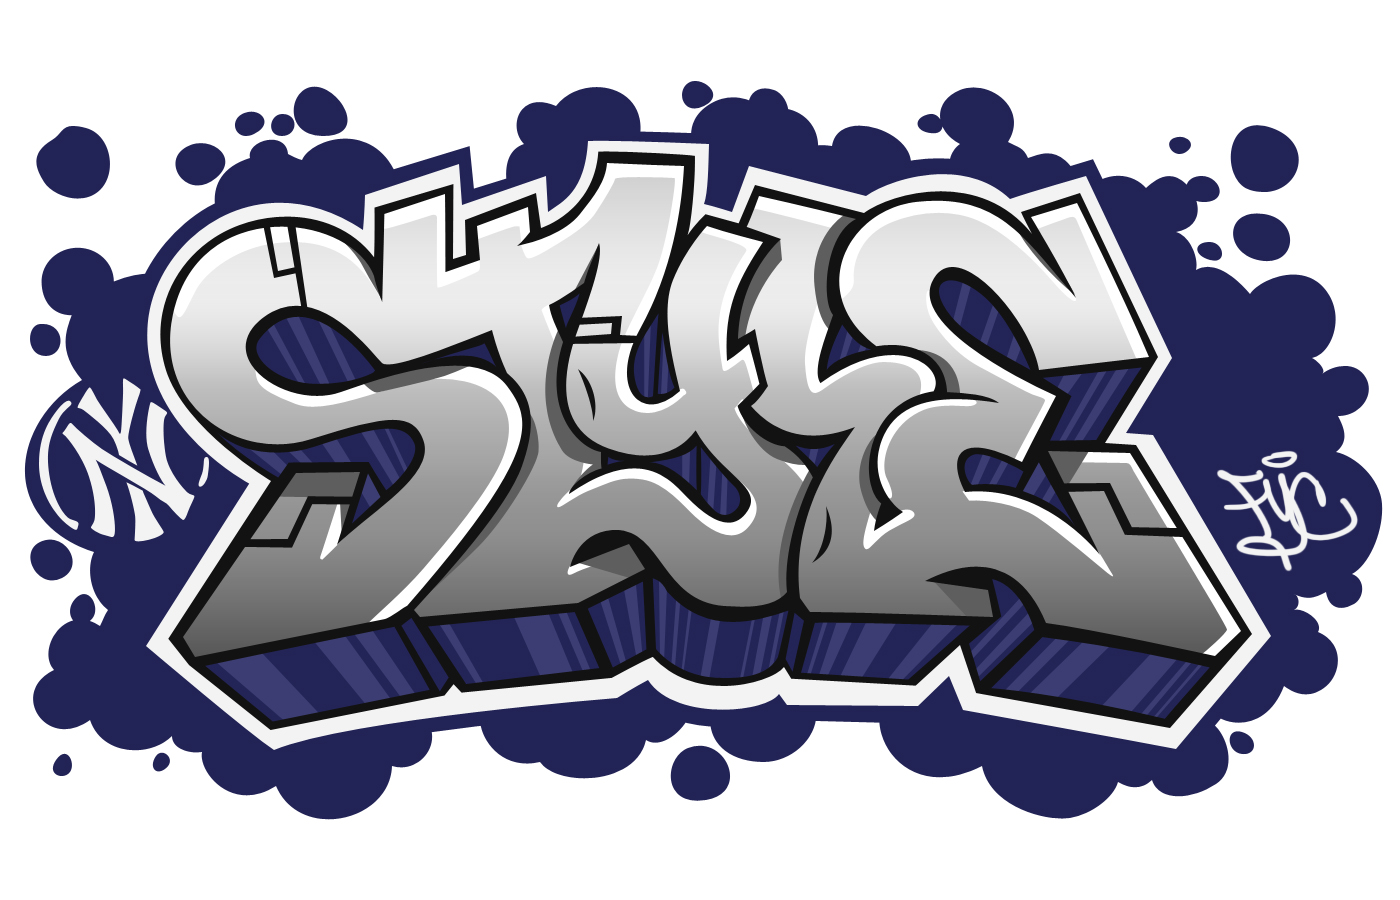 Graffiti Words | New Graffiti Art